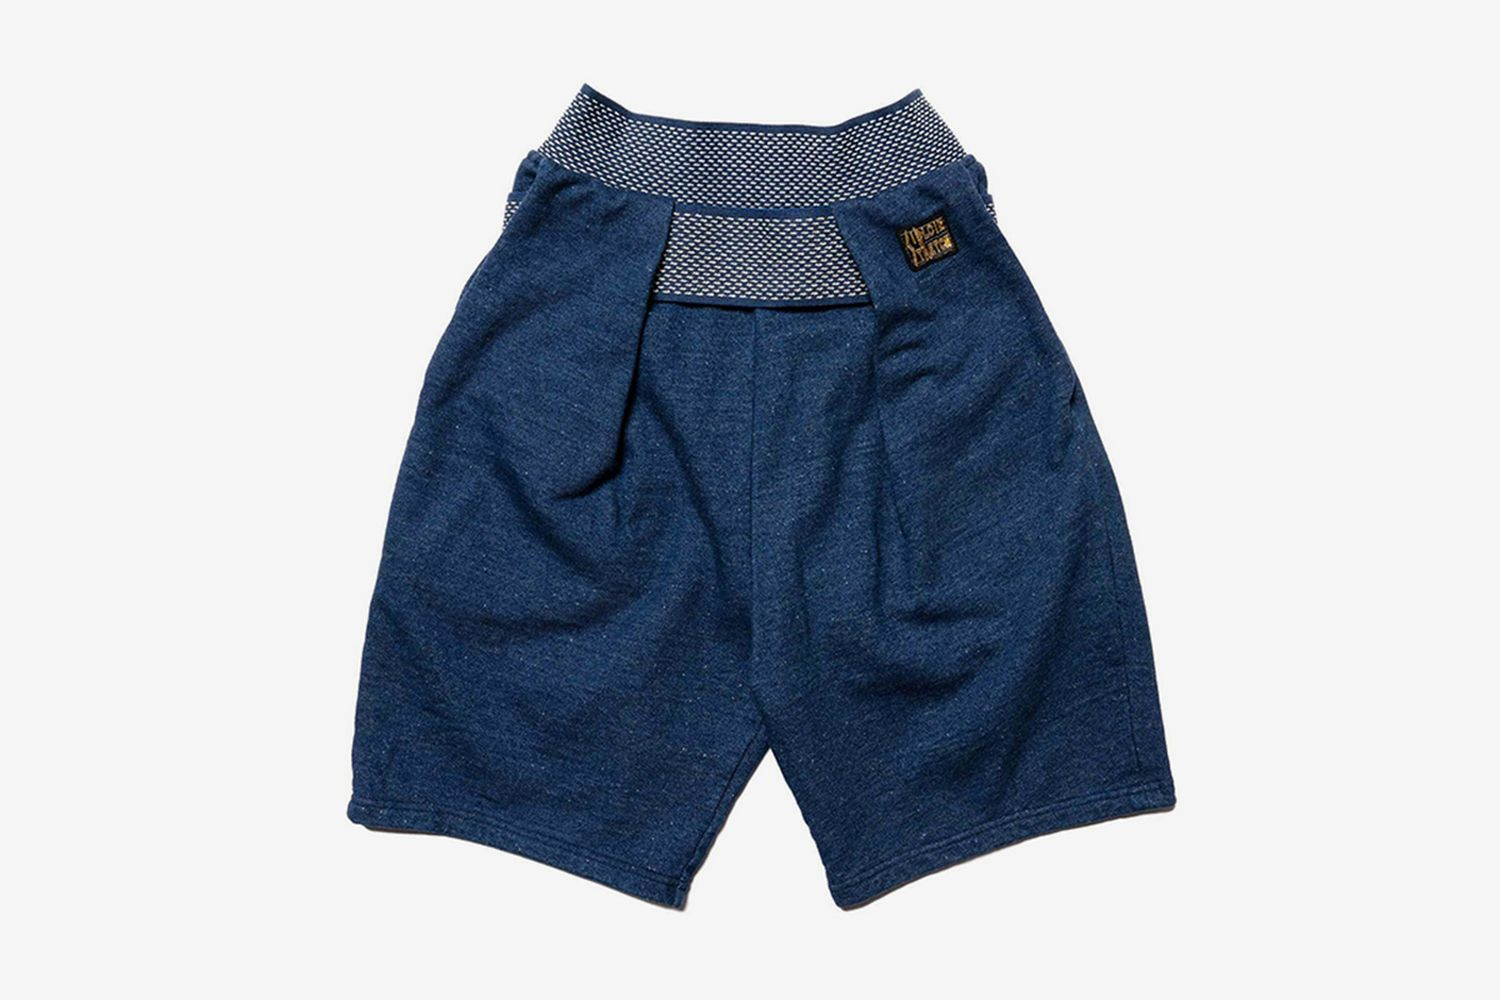 IDG Fleece Knit Shimokita Shorts